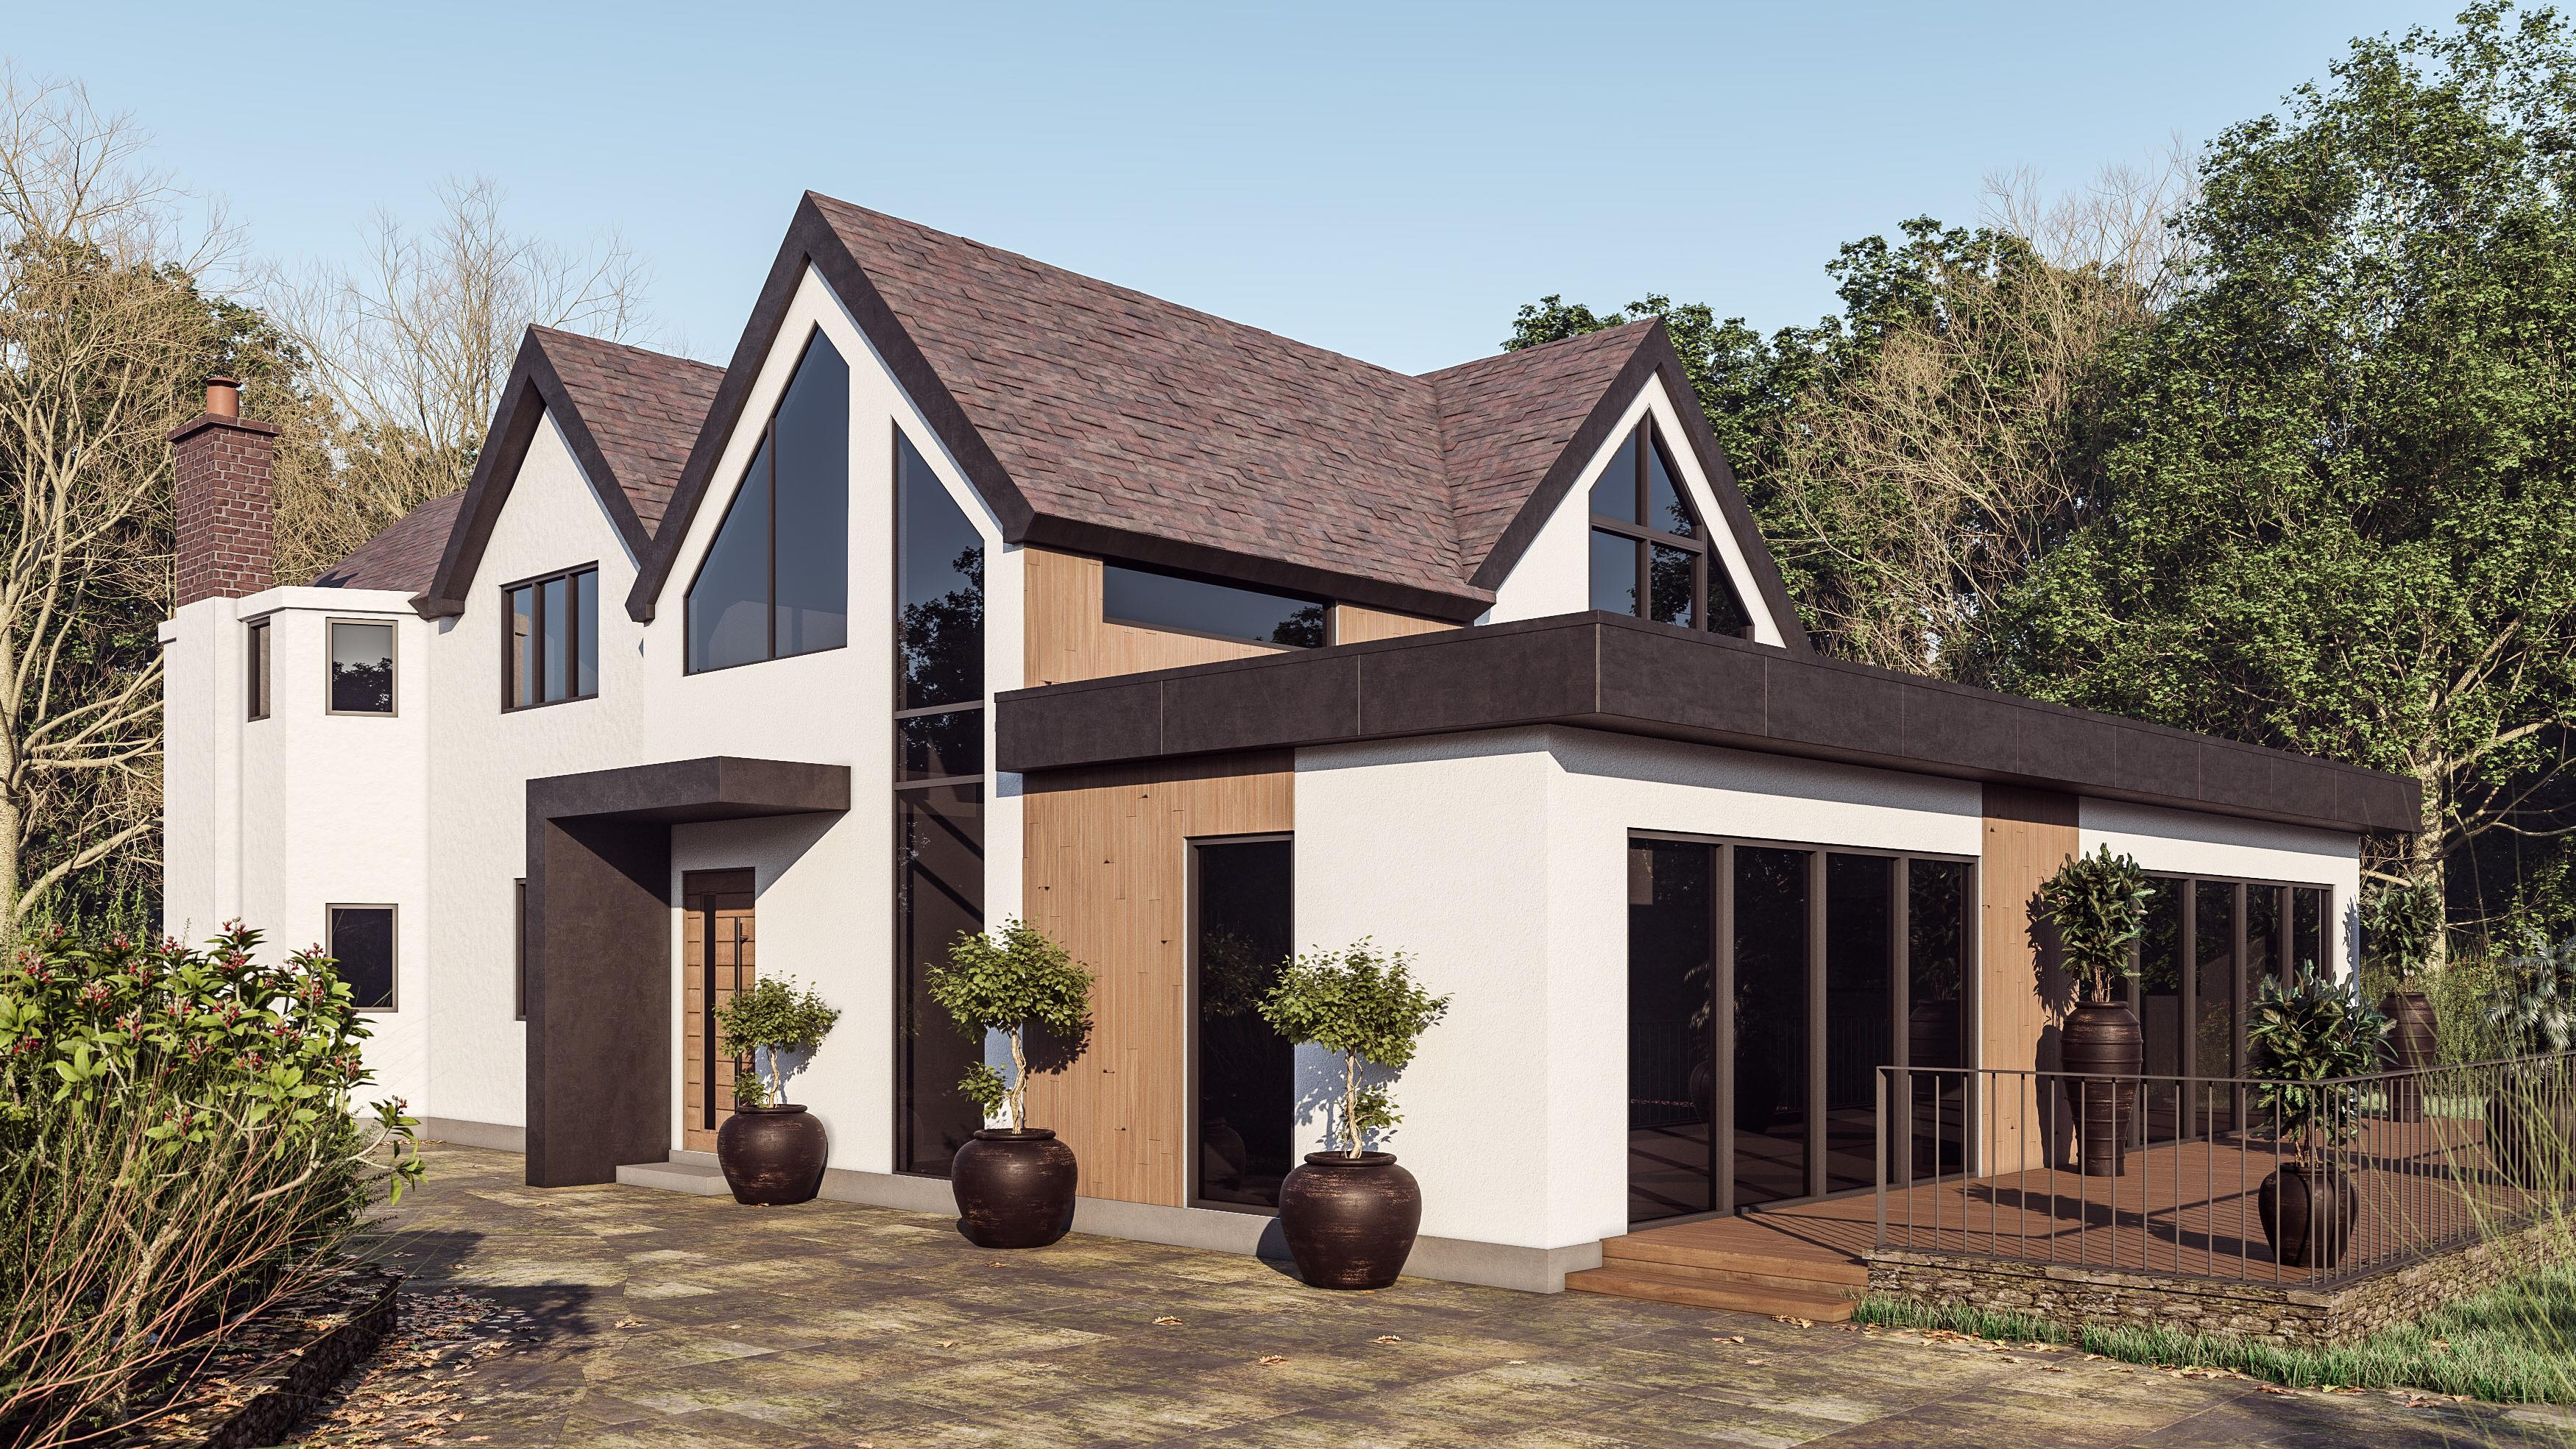 Little Eaton Renovation and Extension 3D image Idea1.jpg